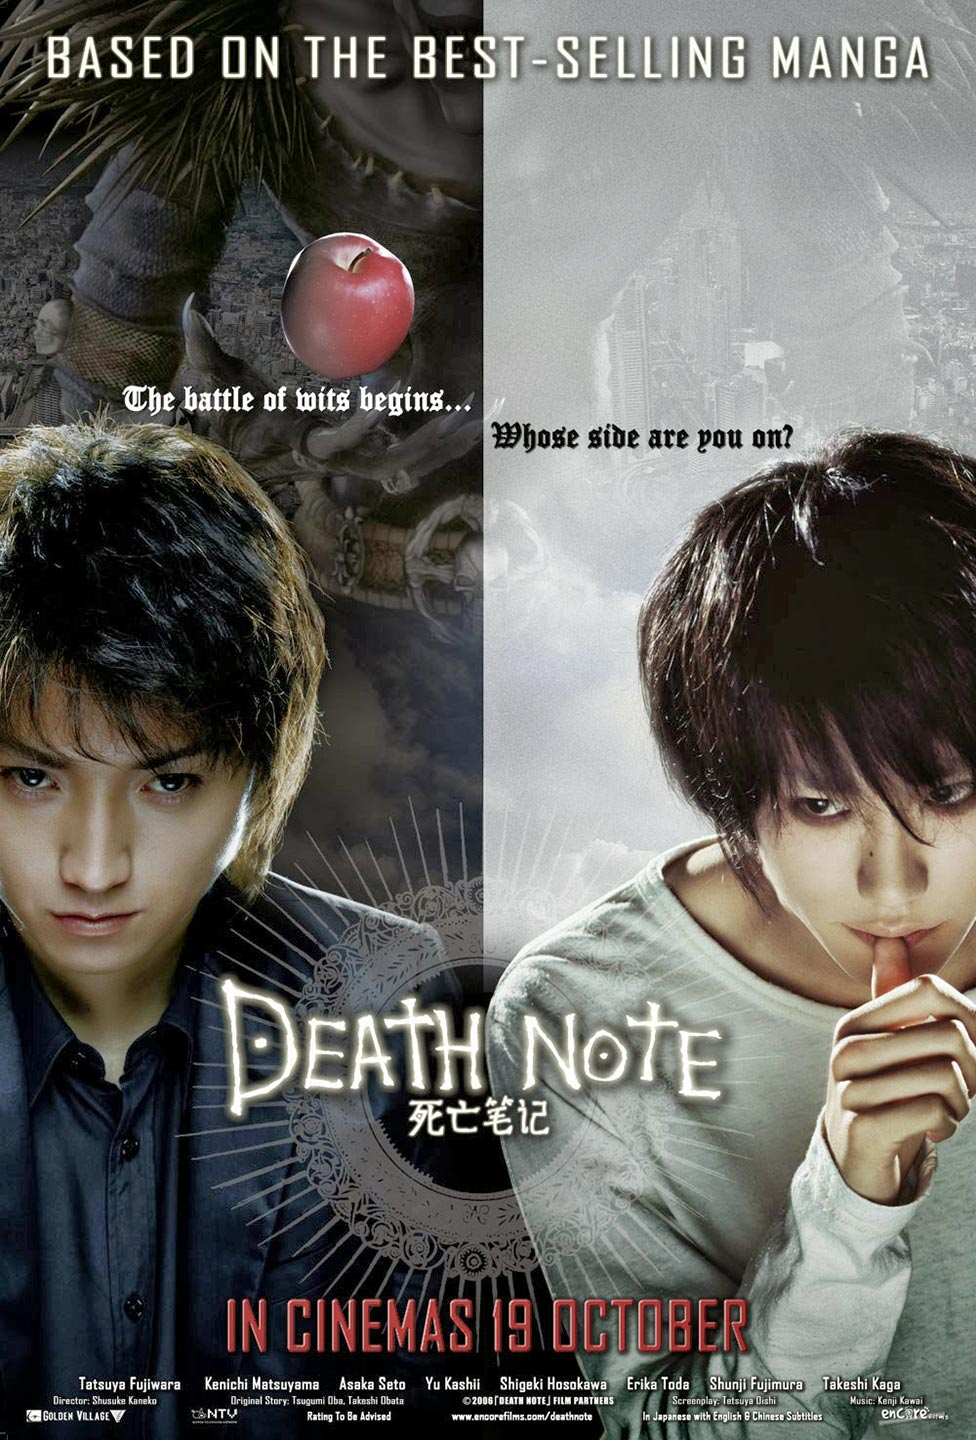 L'adattamento originale di Death Note